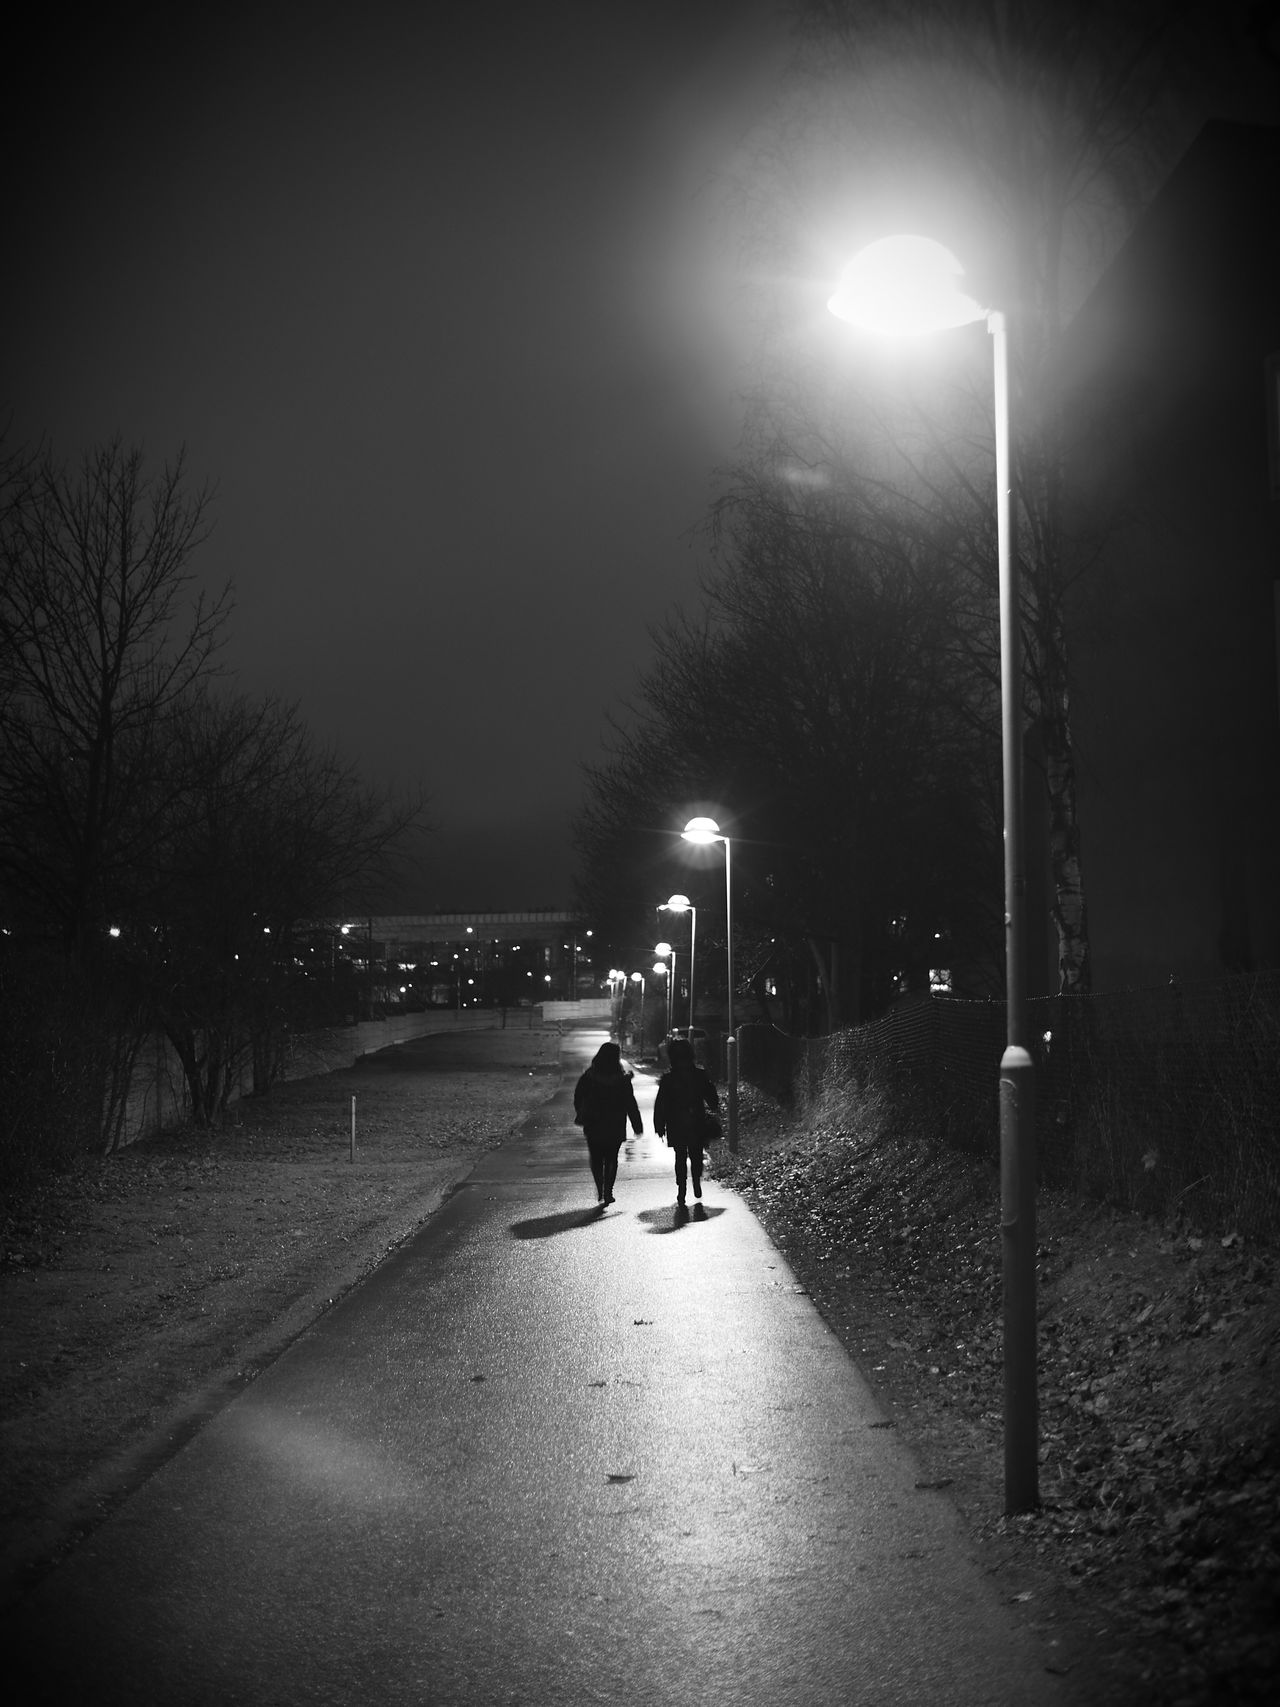 Walking in the night Street Light Sky Tree Illuminated Outdoors Rear View Real People Road Night The Way Forward City Unrecognizable People Blackandwhite Black And White Black & White Monochrome